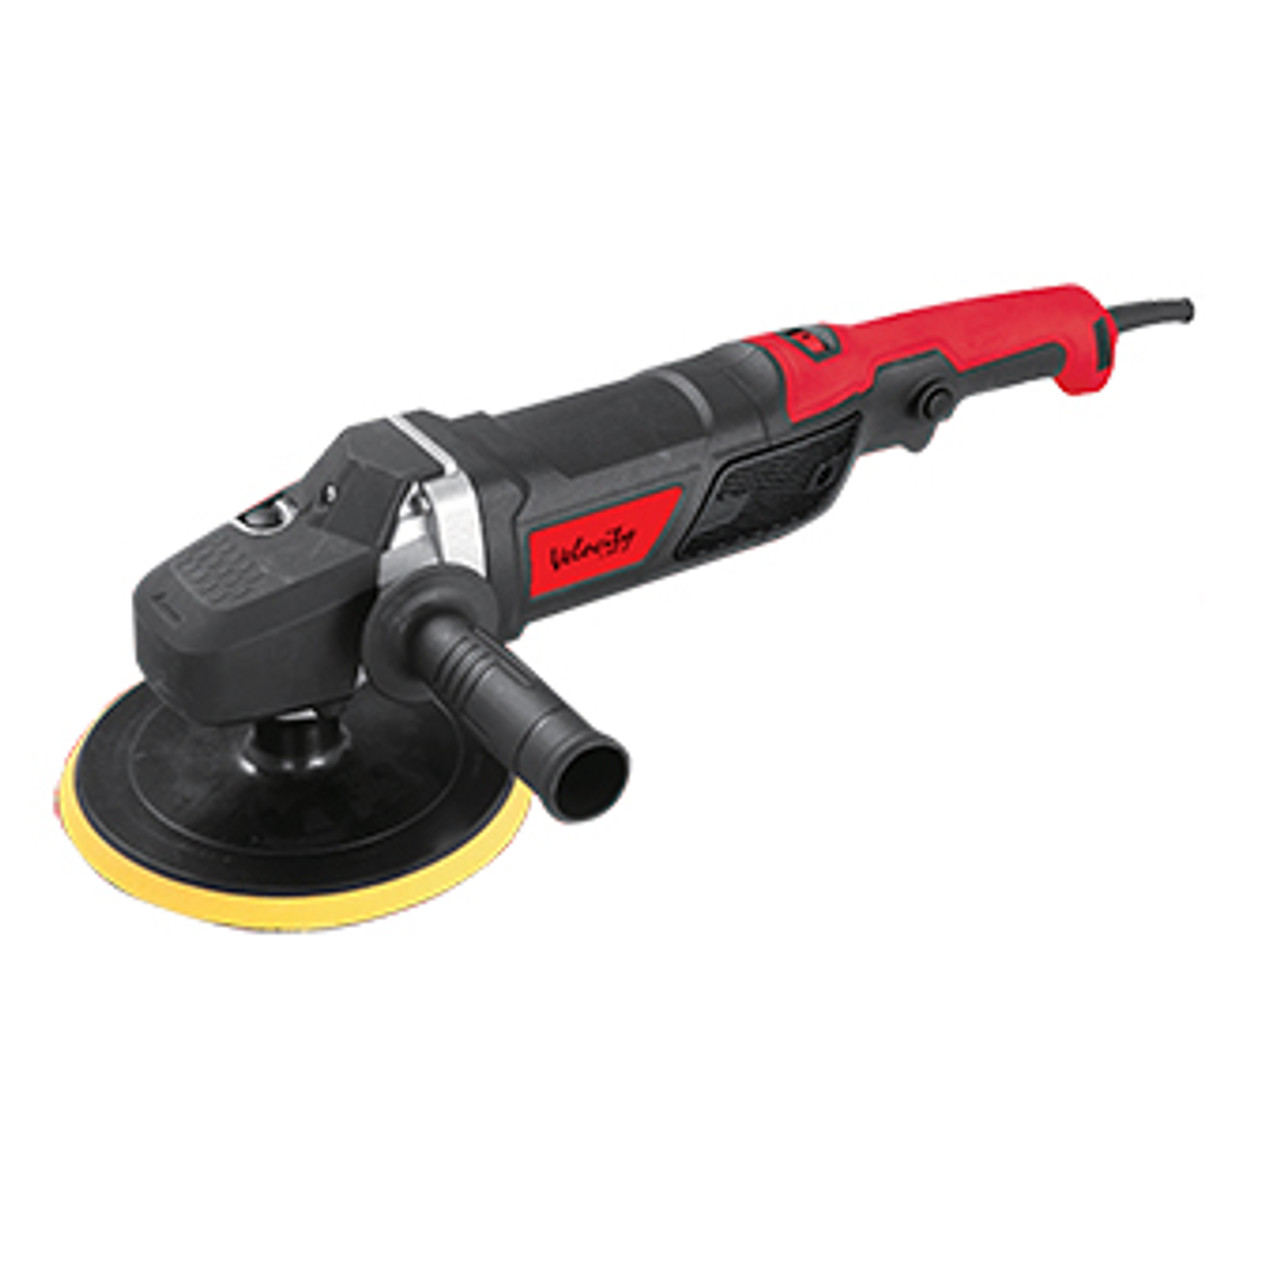 Polisher - Variable Speed